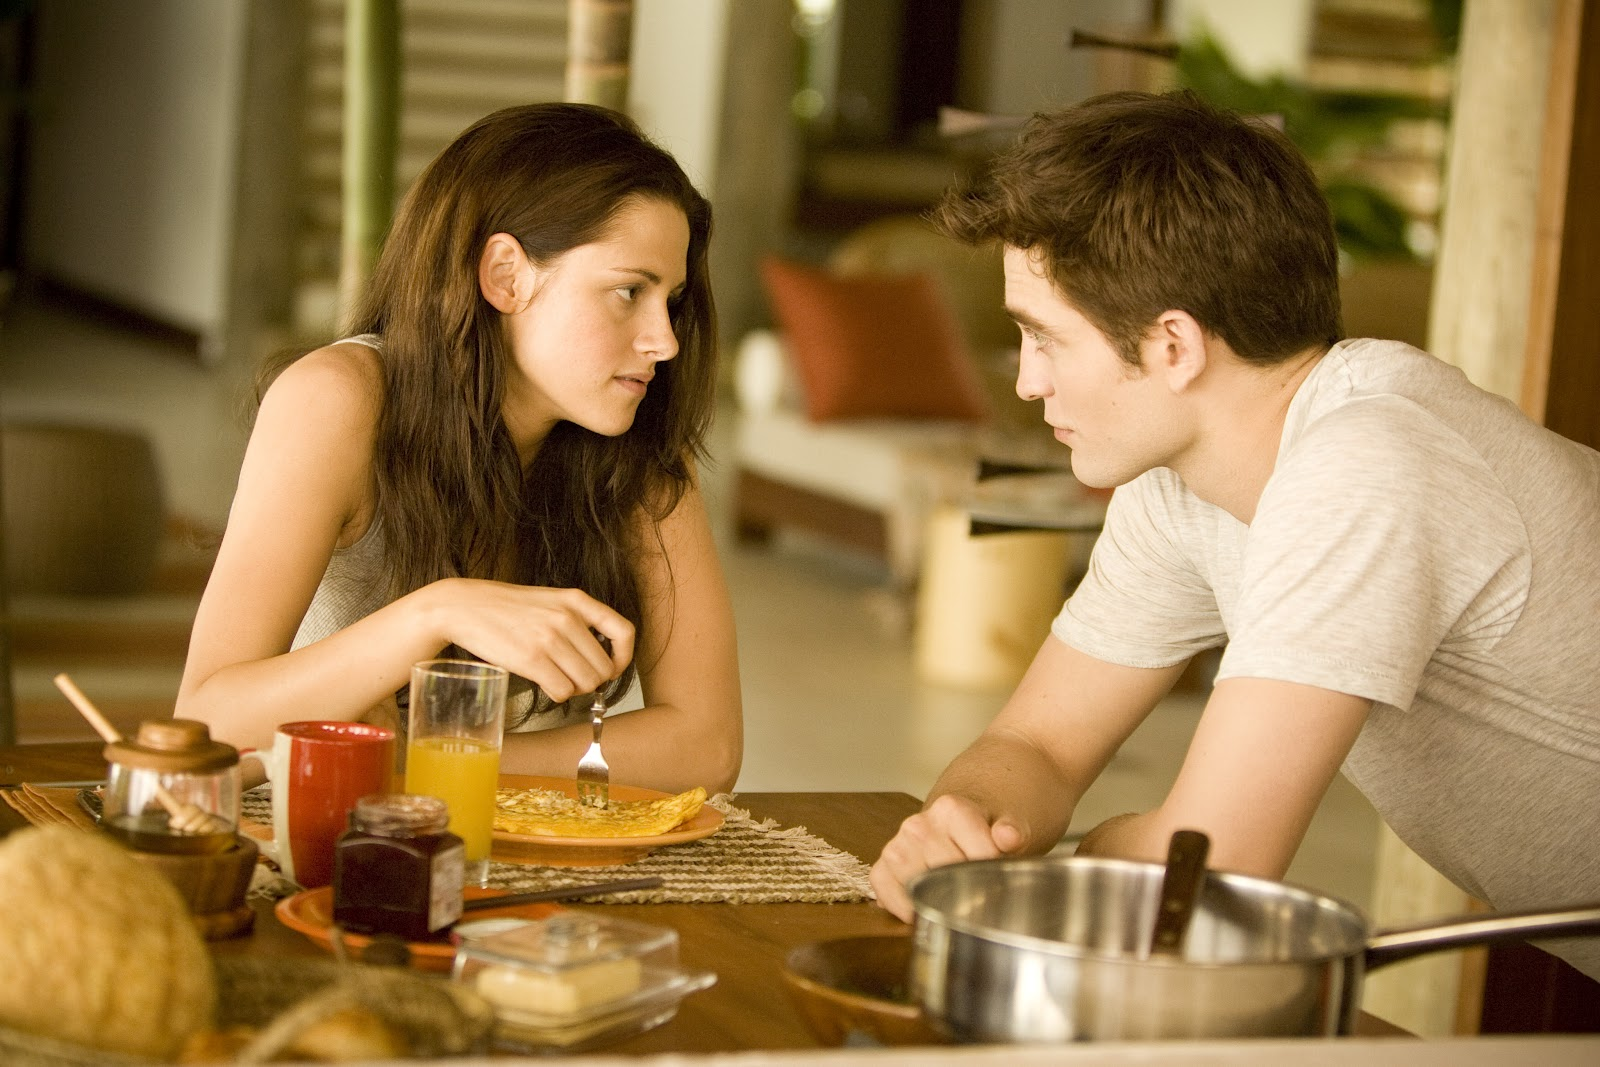 http://1.bp.blogspot.com/-oWFsdp271Zc/T7altOX06dI/AAAAAAAAENE/yTBeLMHqvck/s1600/the-twilight-saga-breaking-dawn-part-1-movie-image-kristen-stewart-robert-pattinson-03.jpeg